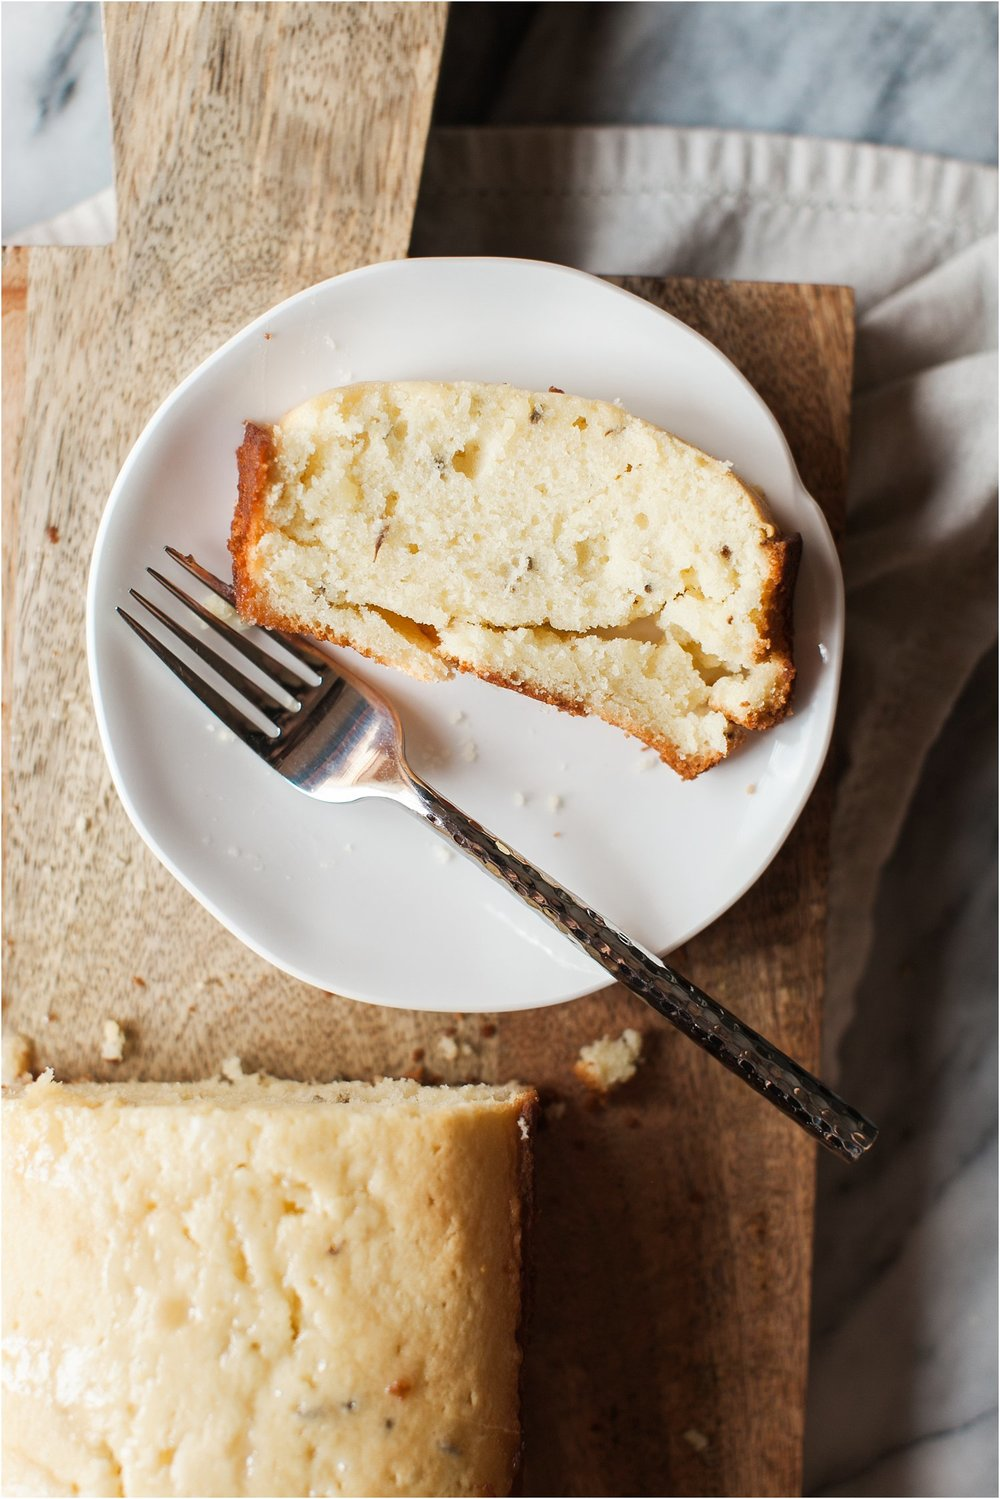 Lemon Lavender Pound Cake with Lemon Glaze | Summer Dessert | Feast & Dwell